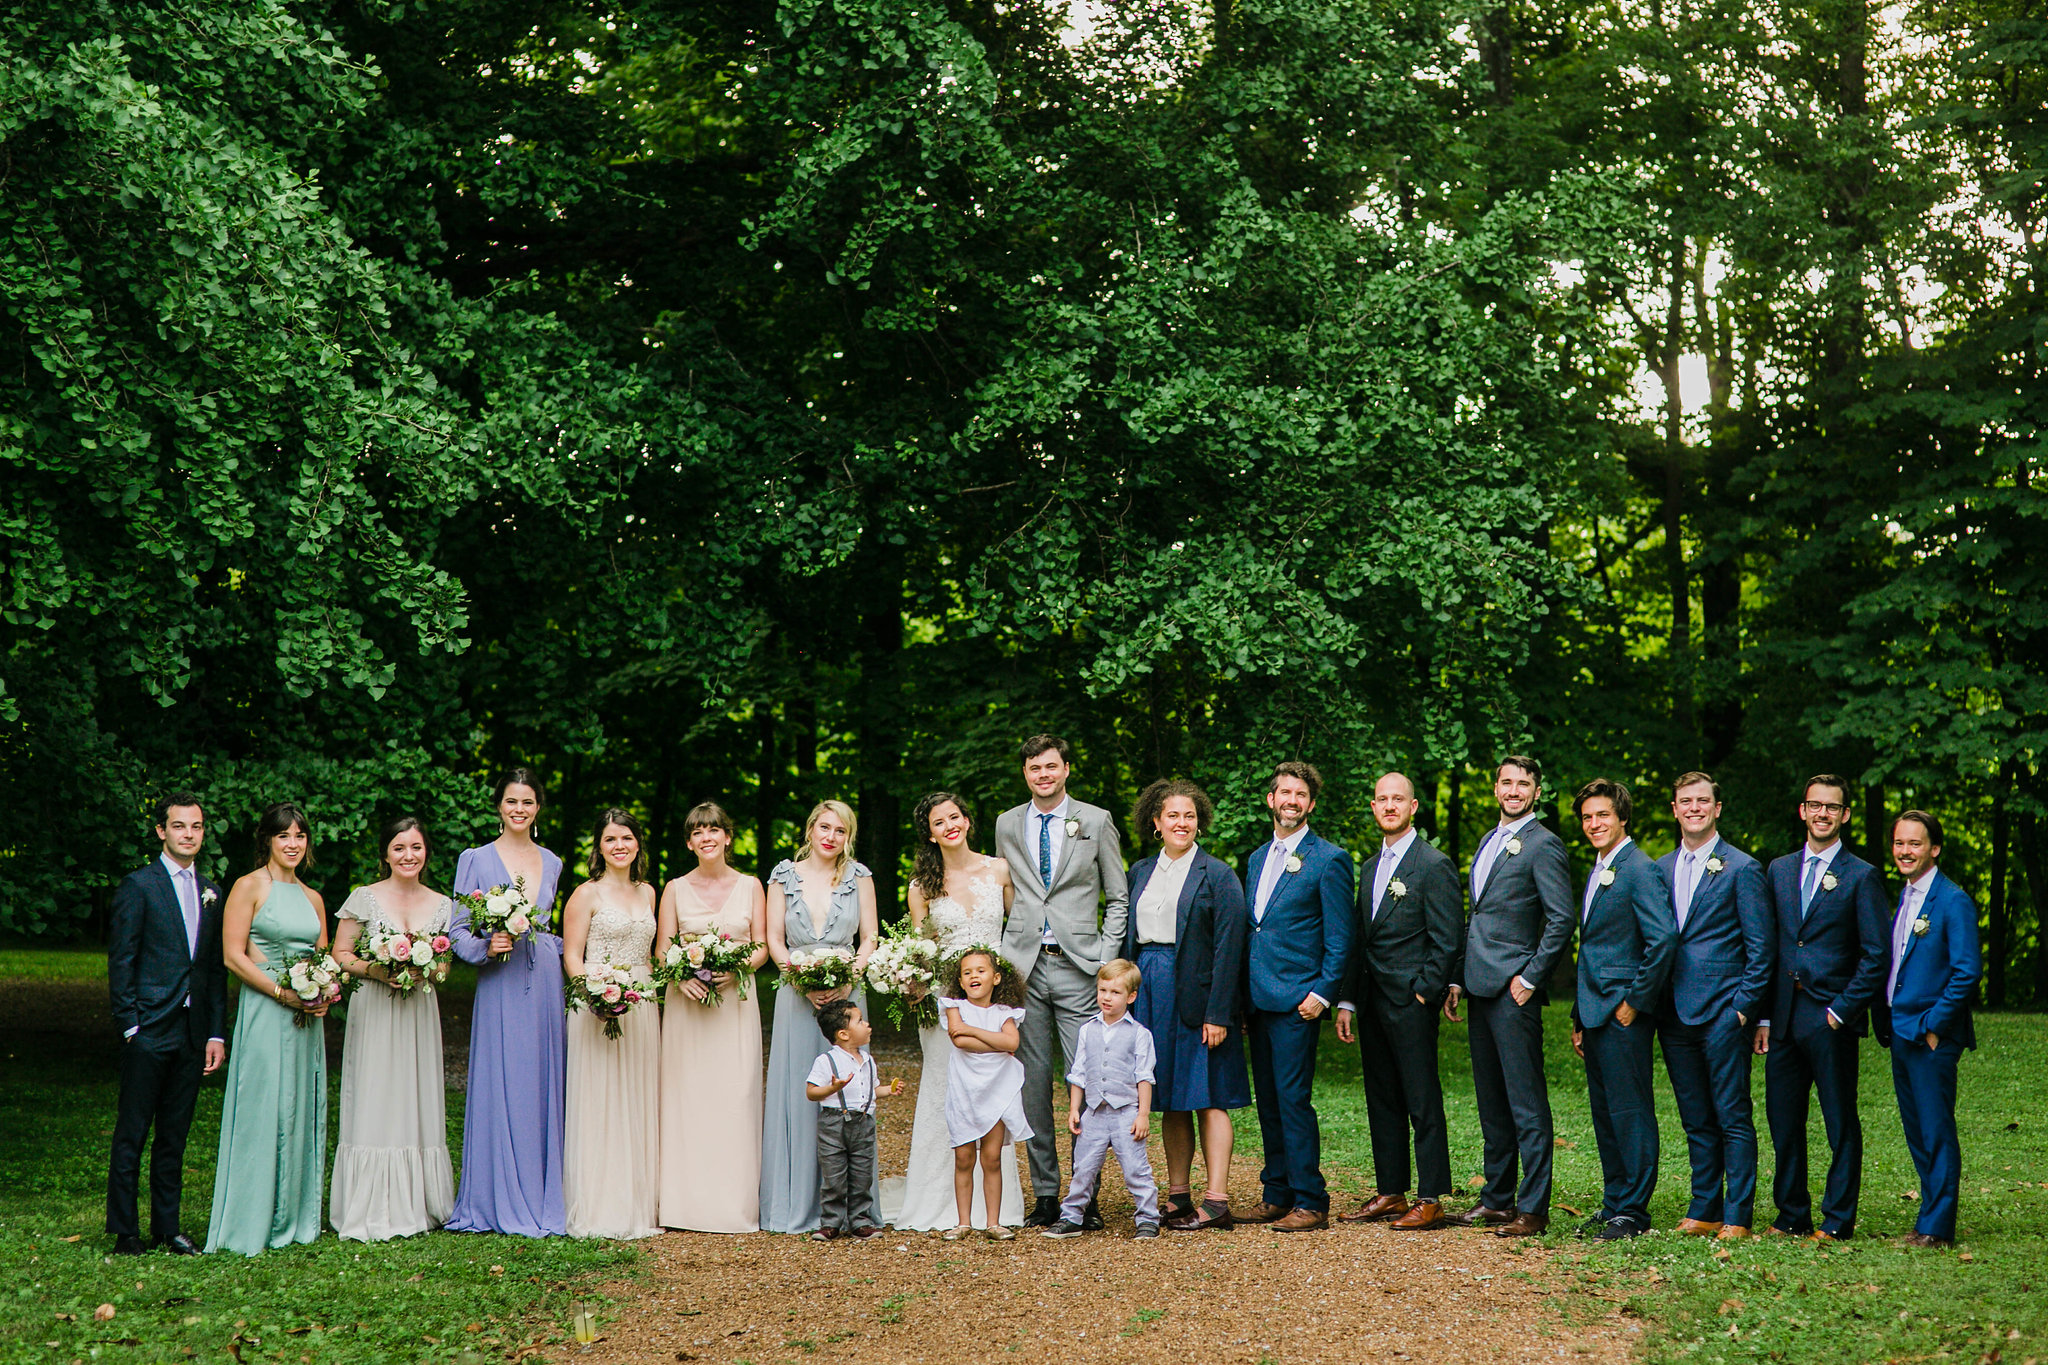 Art deco garden party wedding at Historic Travellers Rest in Nashville with organic, untamed floral design